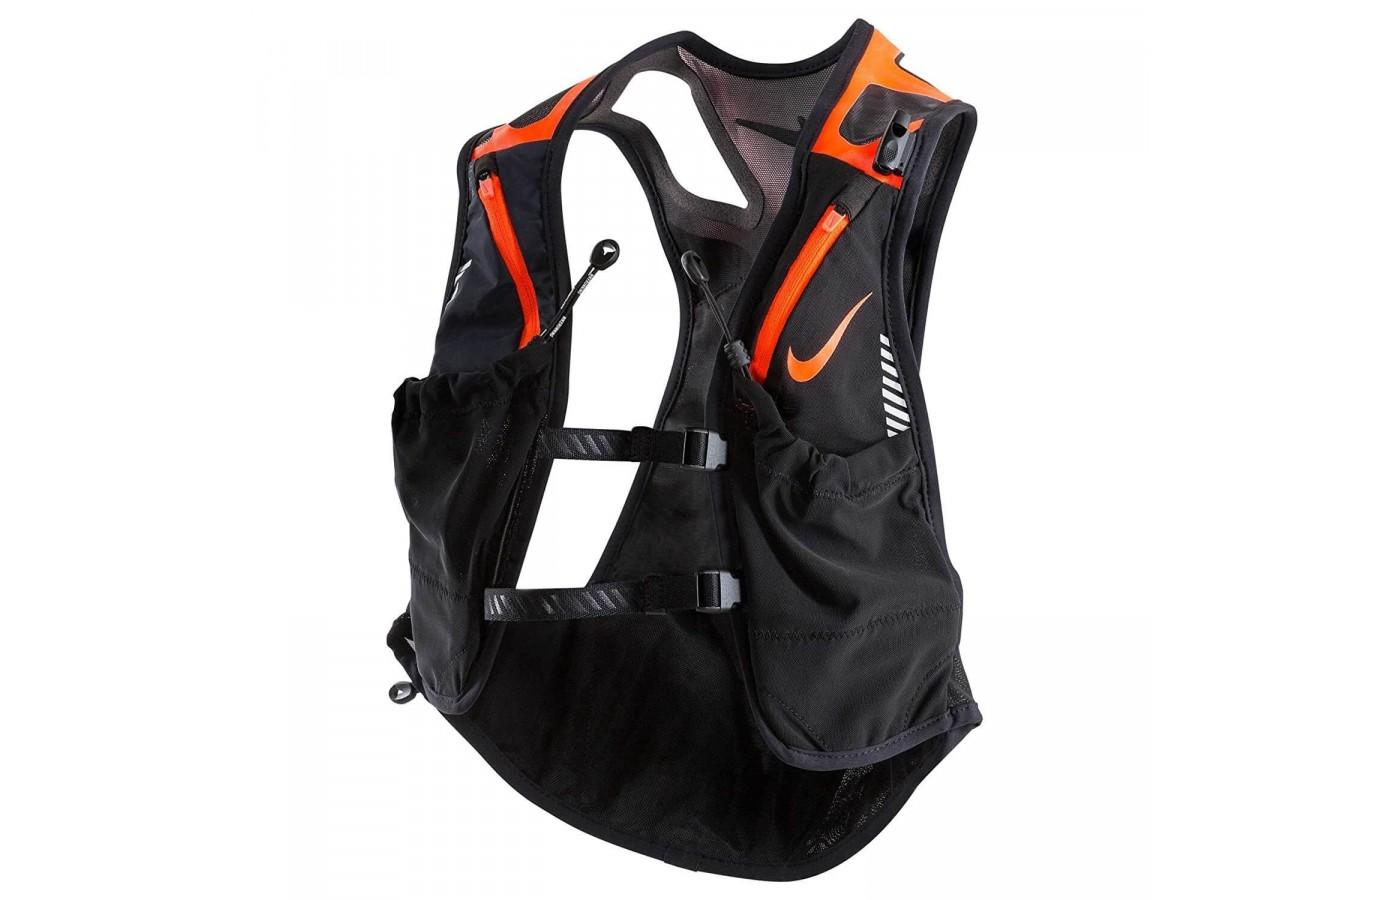 here's a look at Nike's first hydration vest